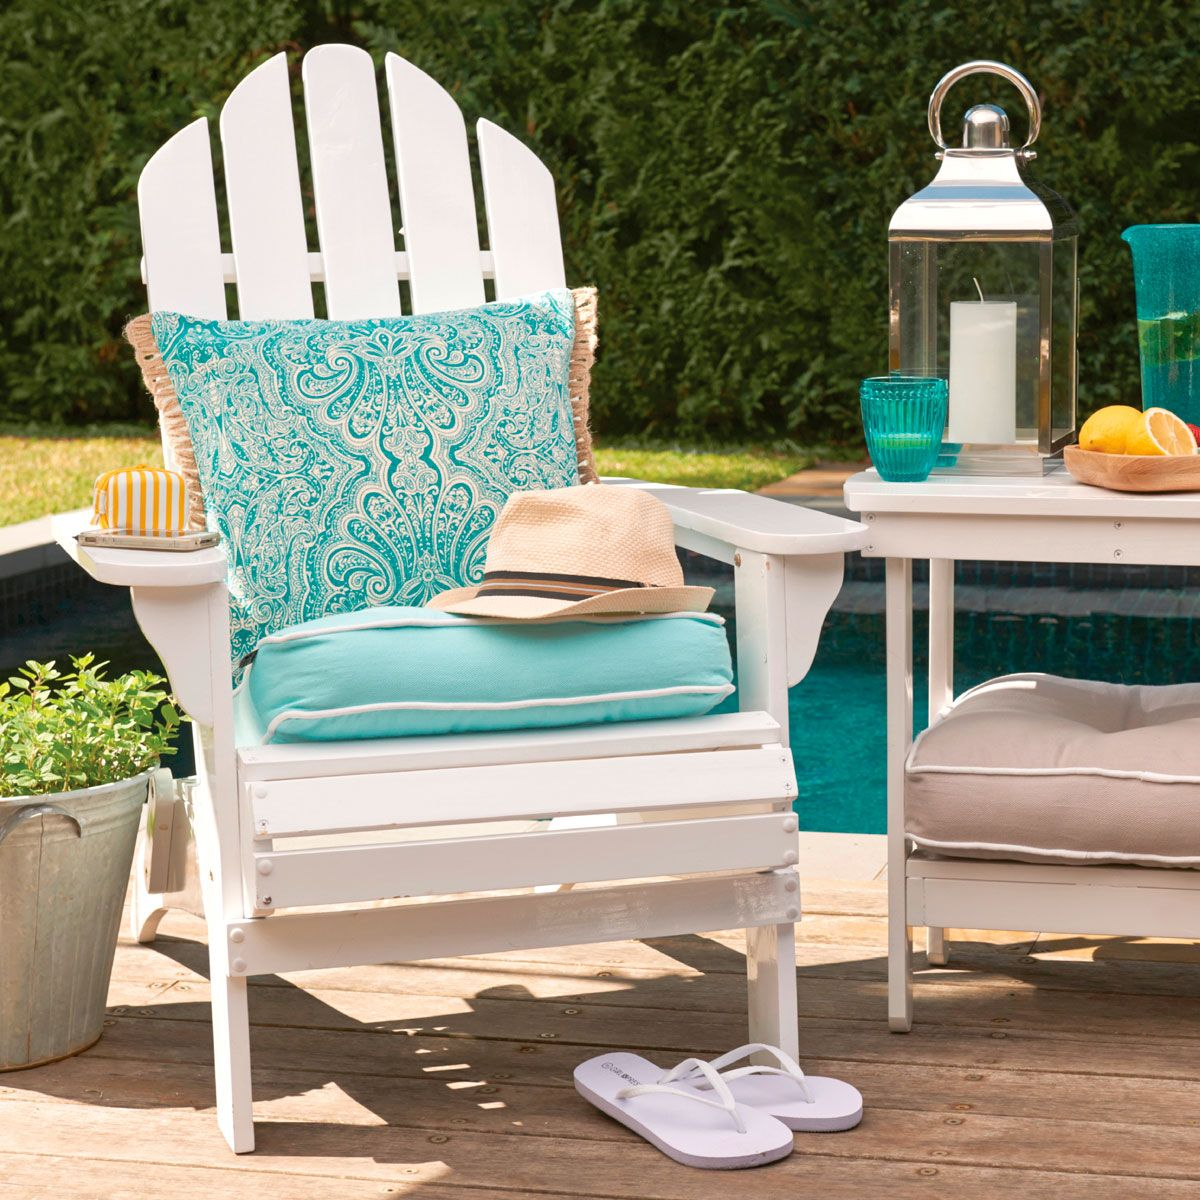 ADIRONDACK CHAIR WHITE Patio chair cushions, White